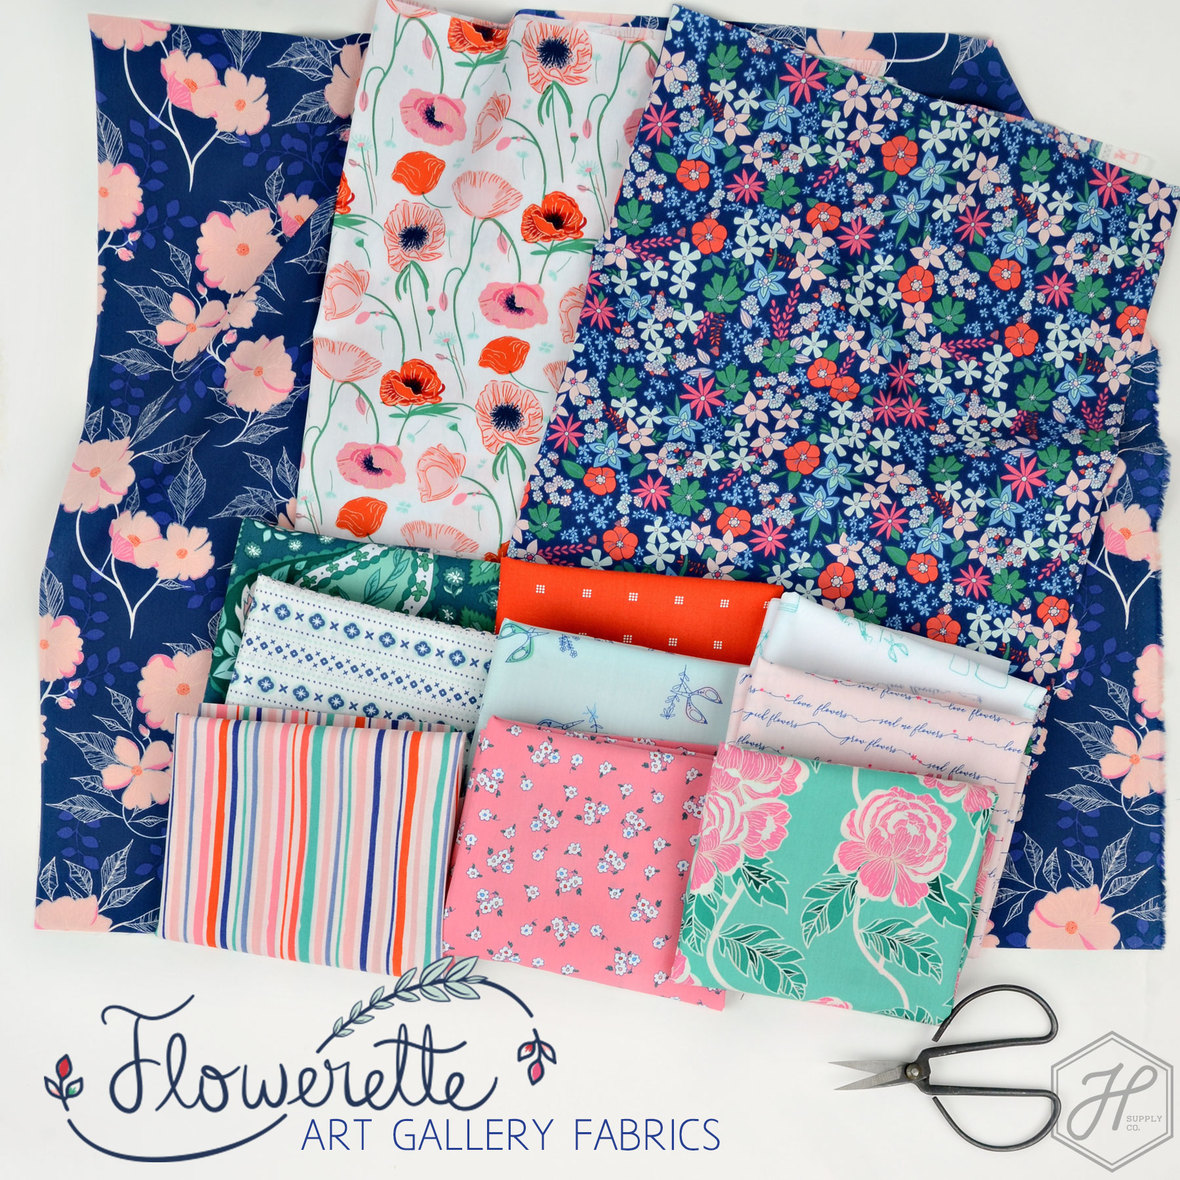 Flowerette-Fabric-Art-Gallery-at-Hawthorne-Supply-Co